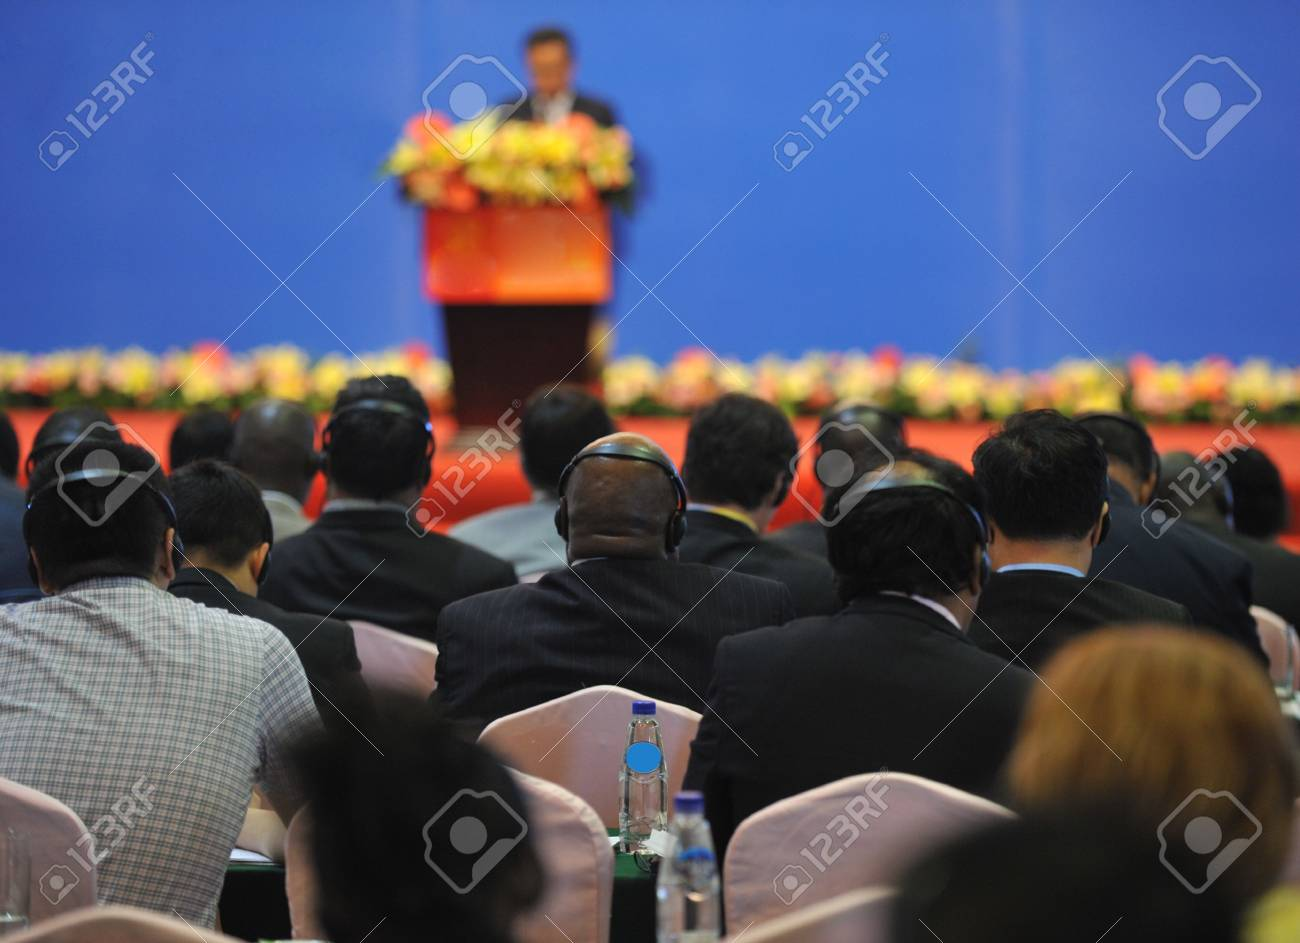 A international seminar was held in Xiamen International Conference and Exhibition Center, photo taken in September 2011. International Fair for Investment and Trade  Stock Photo - 13602331